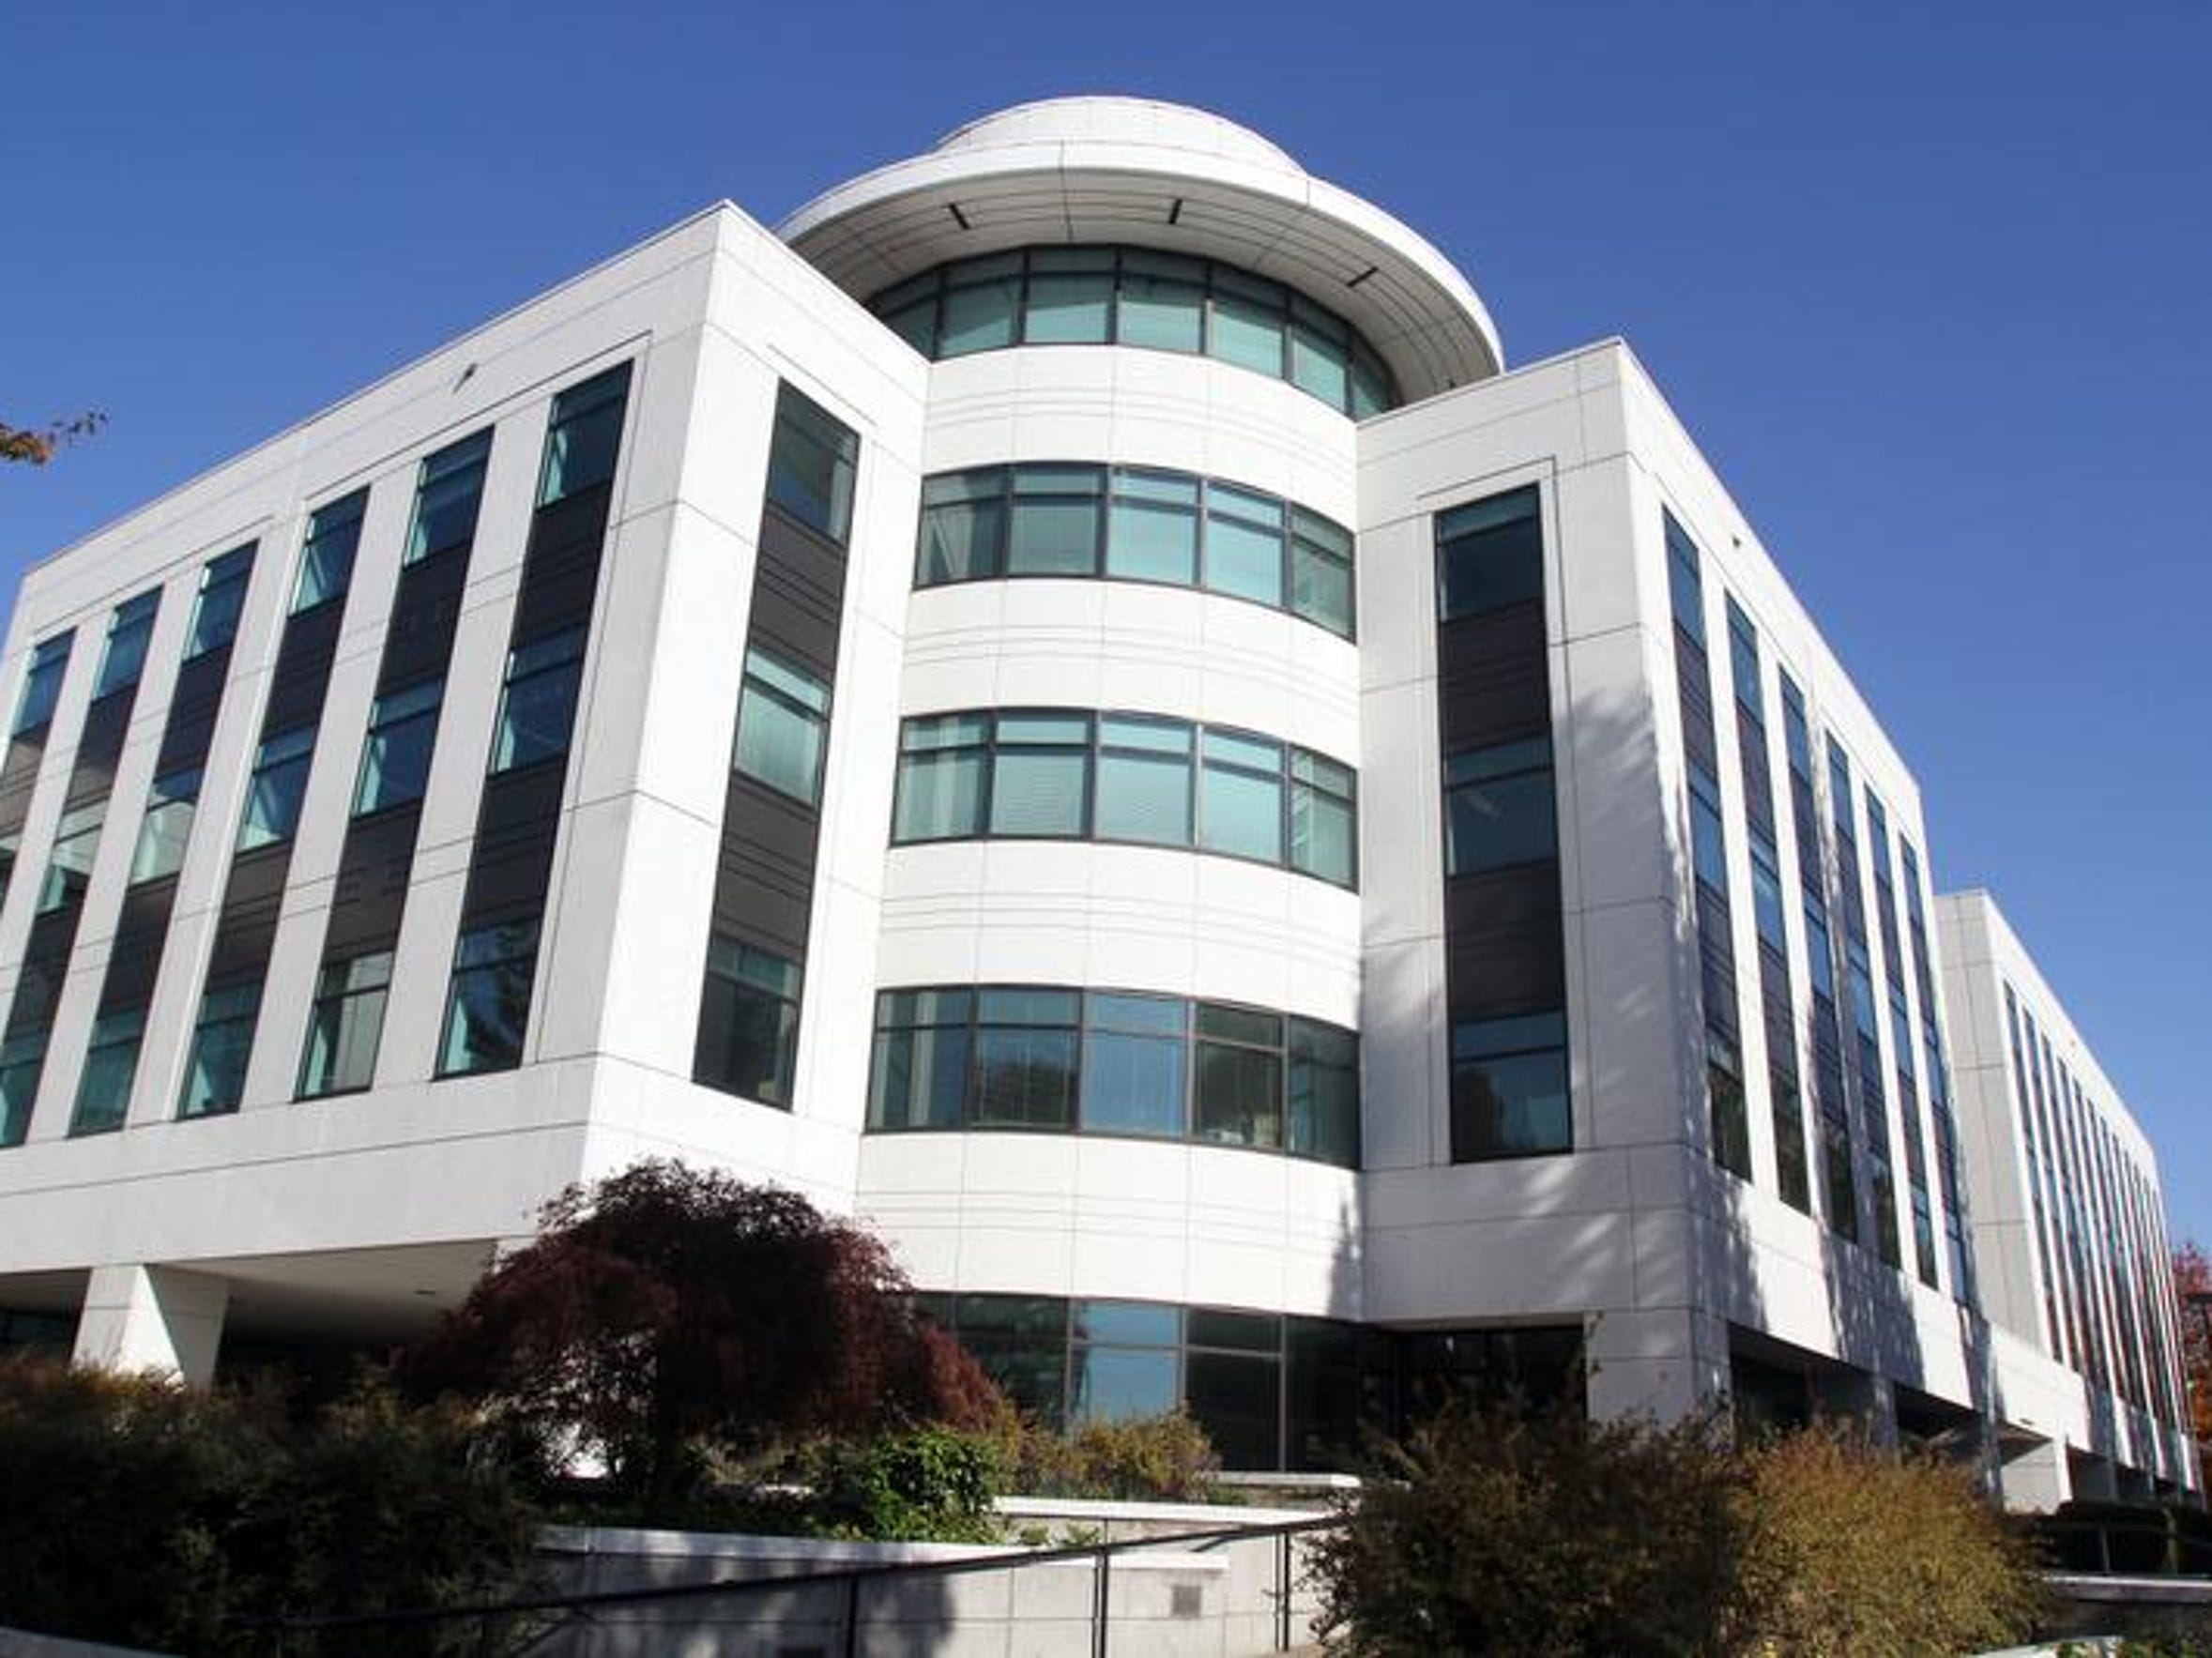 The Oregon Department of Human Services building in